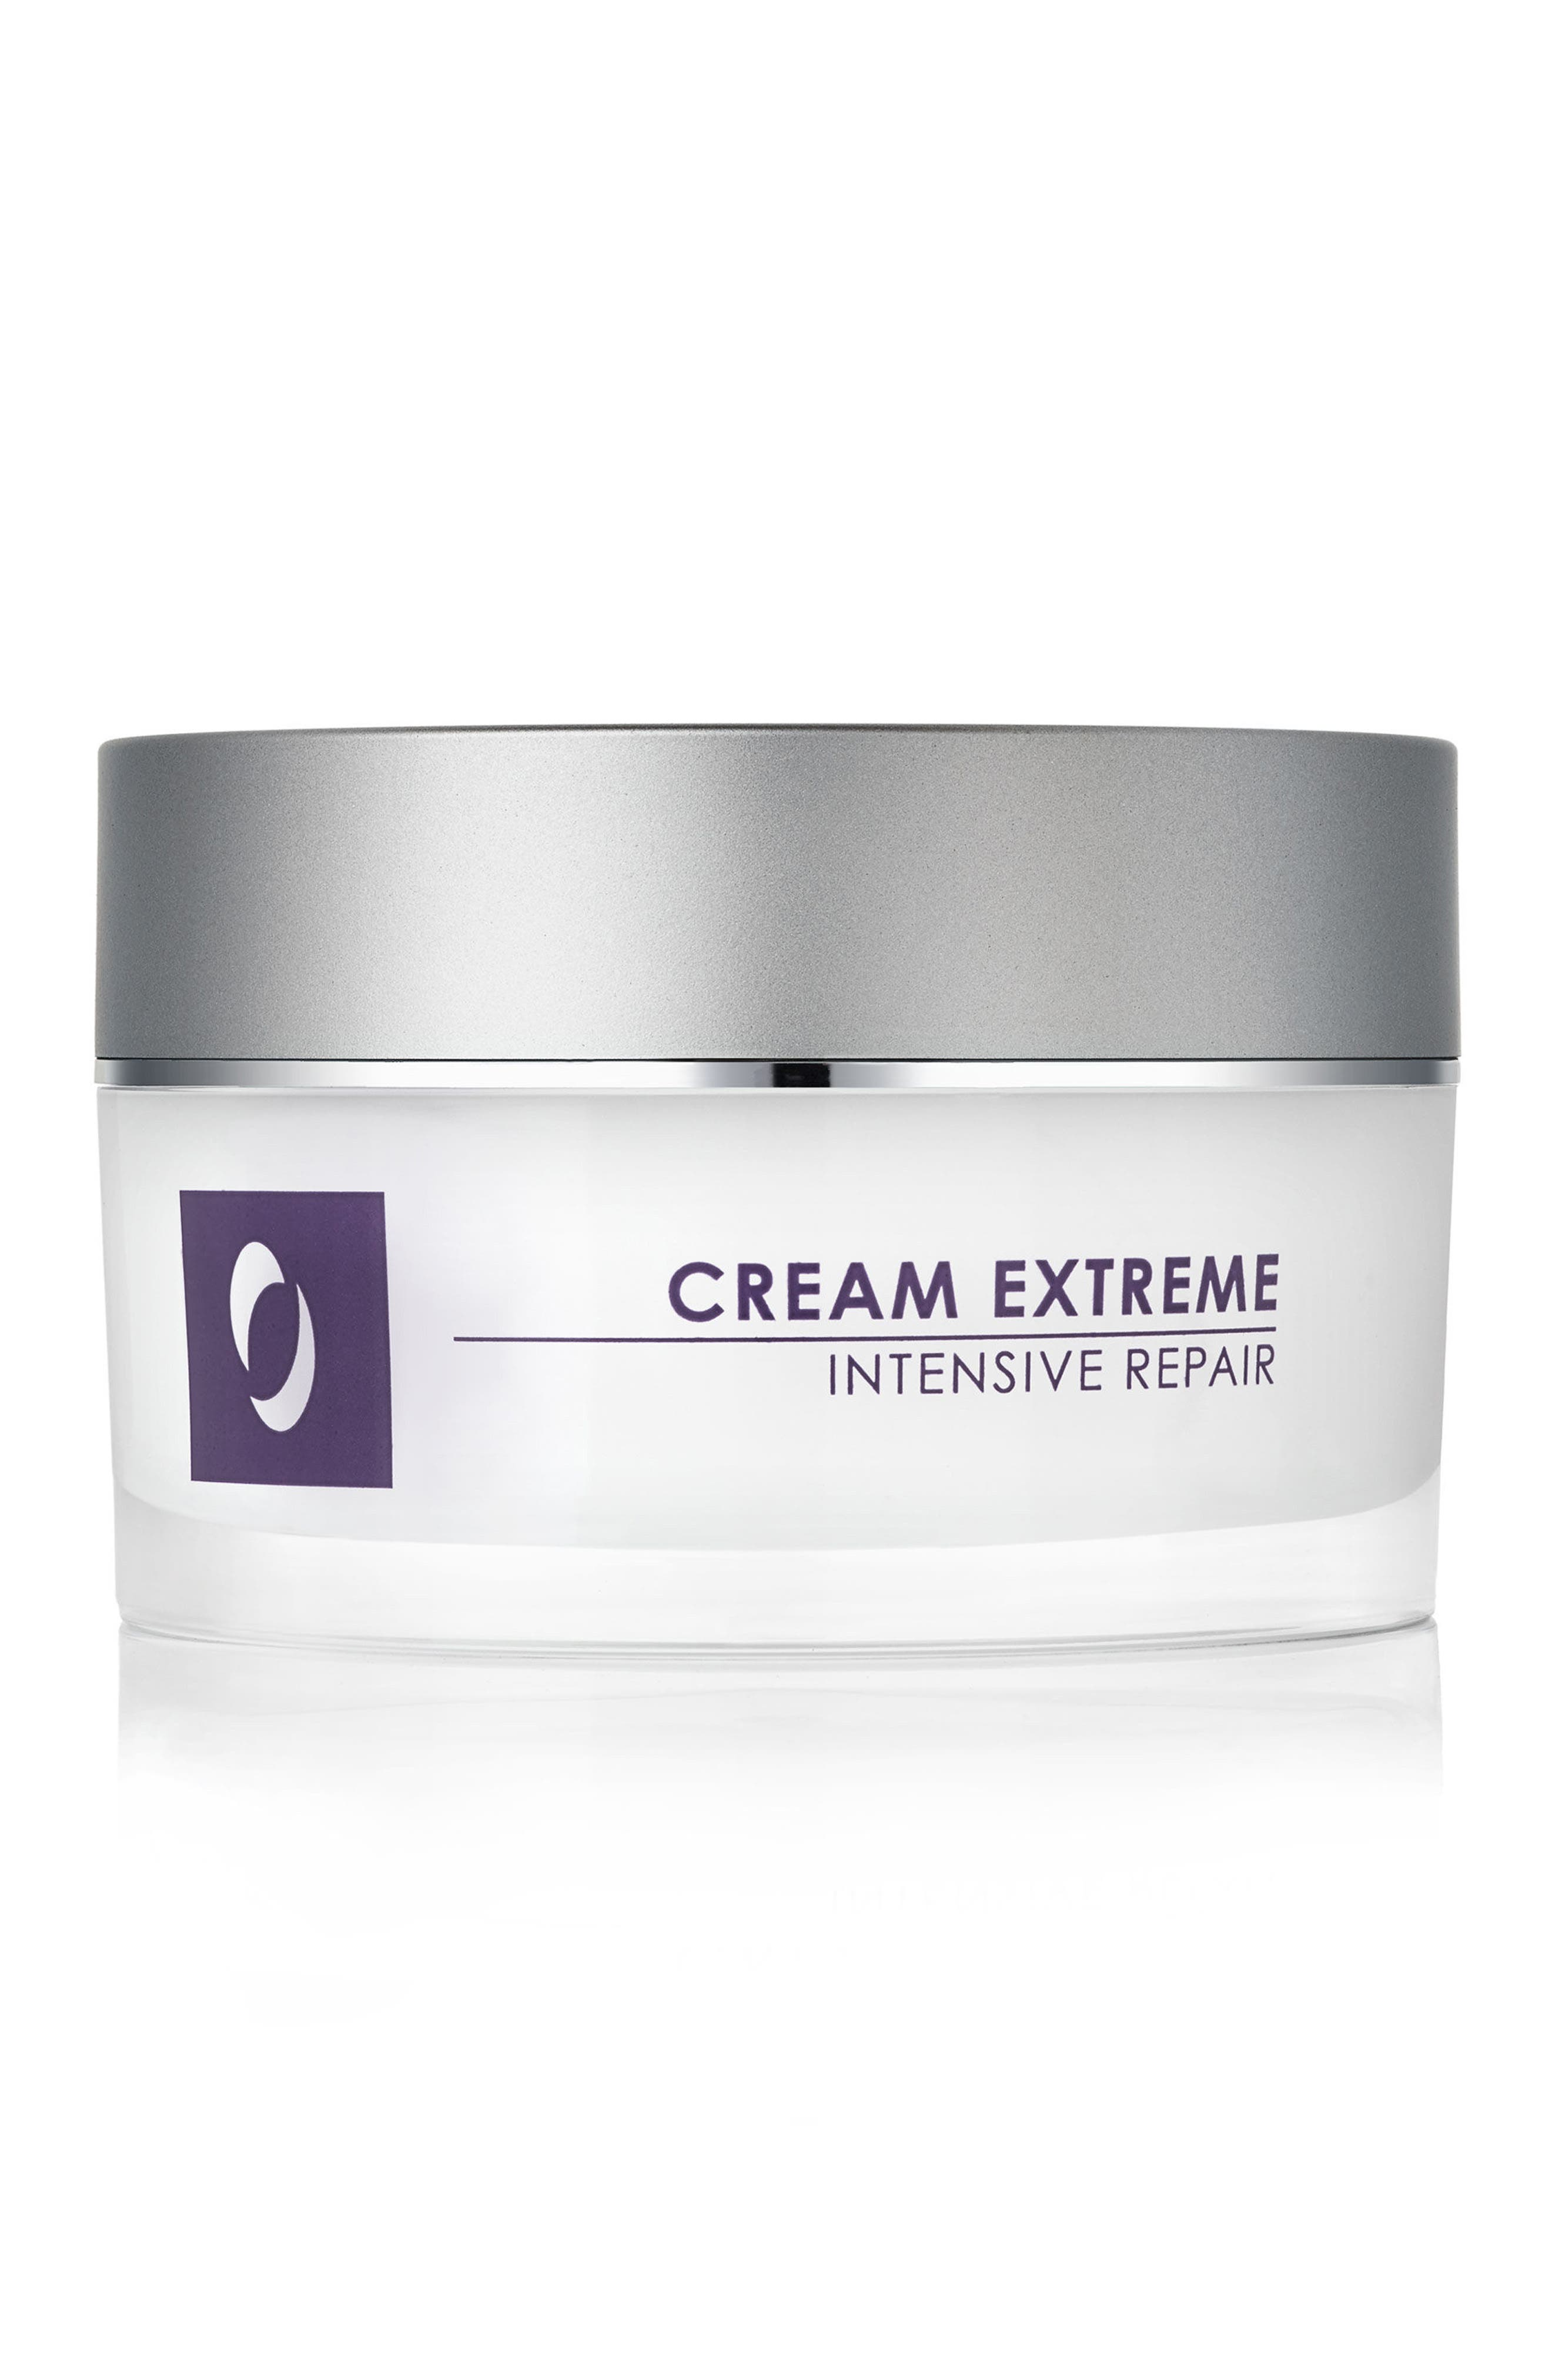 Cream Extreme Barrier Repair,                             Main thumbnail 1, color,                             NO COLOR